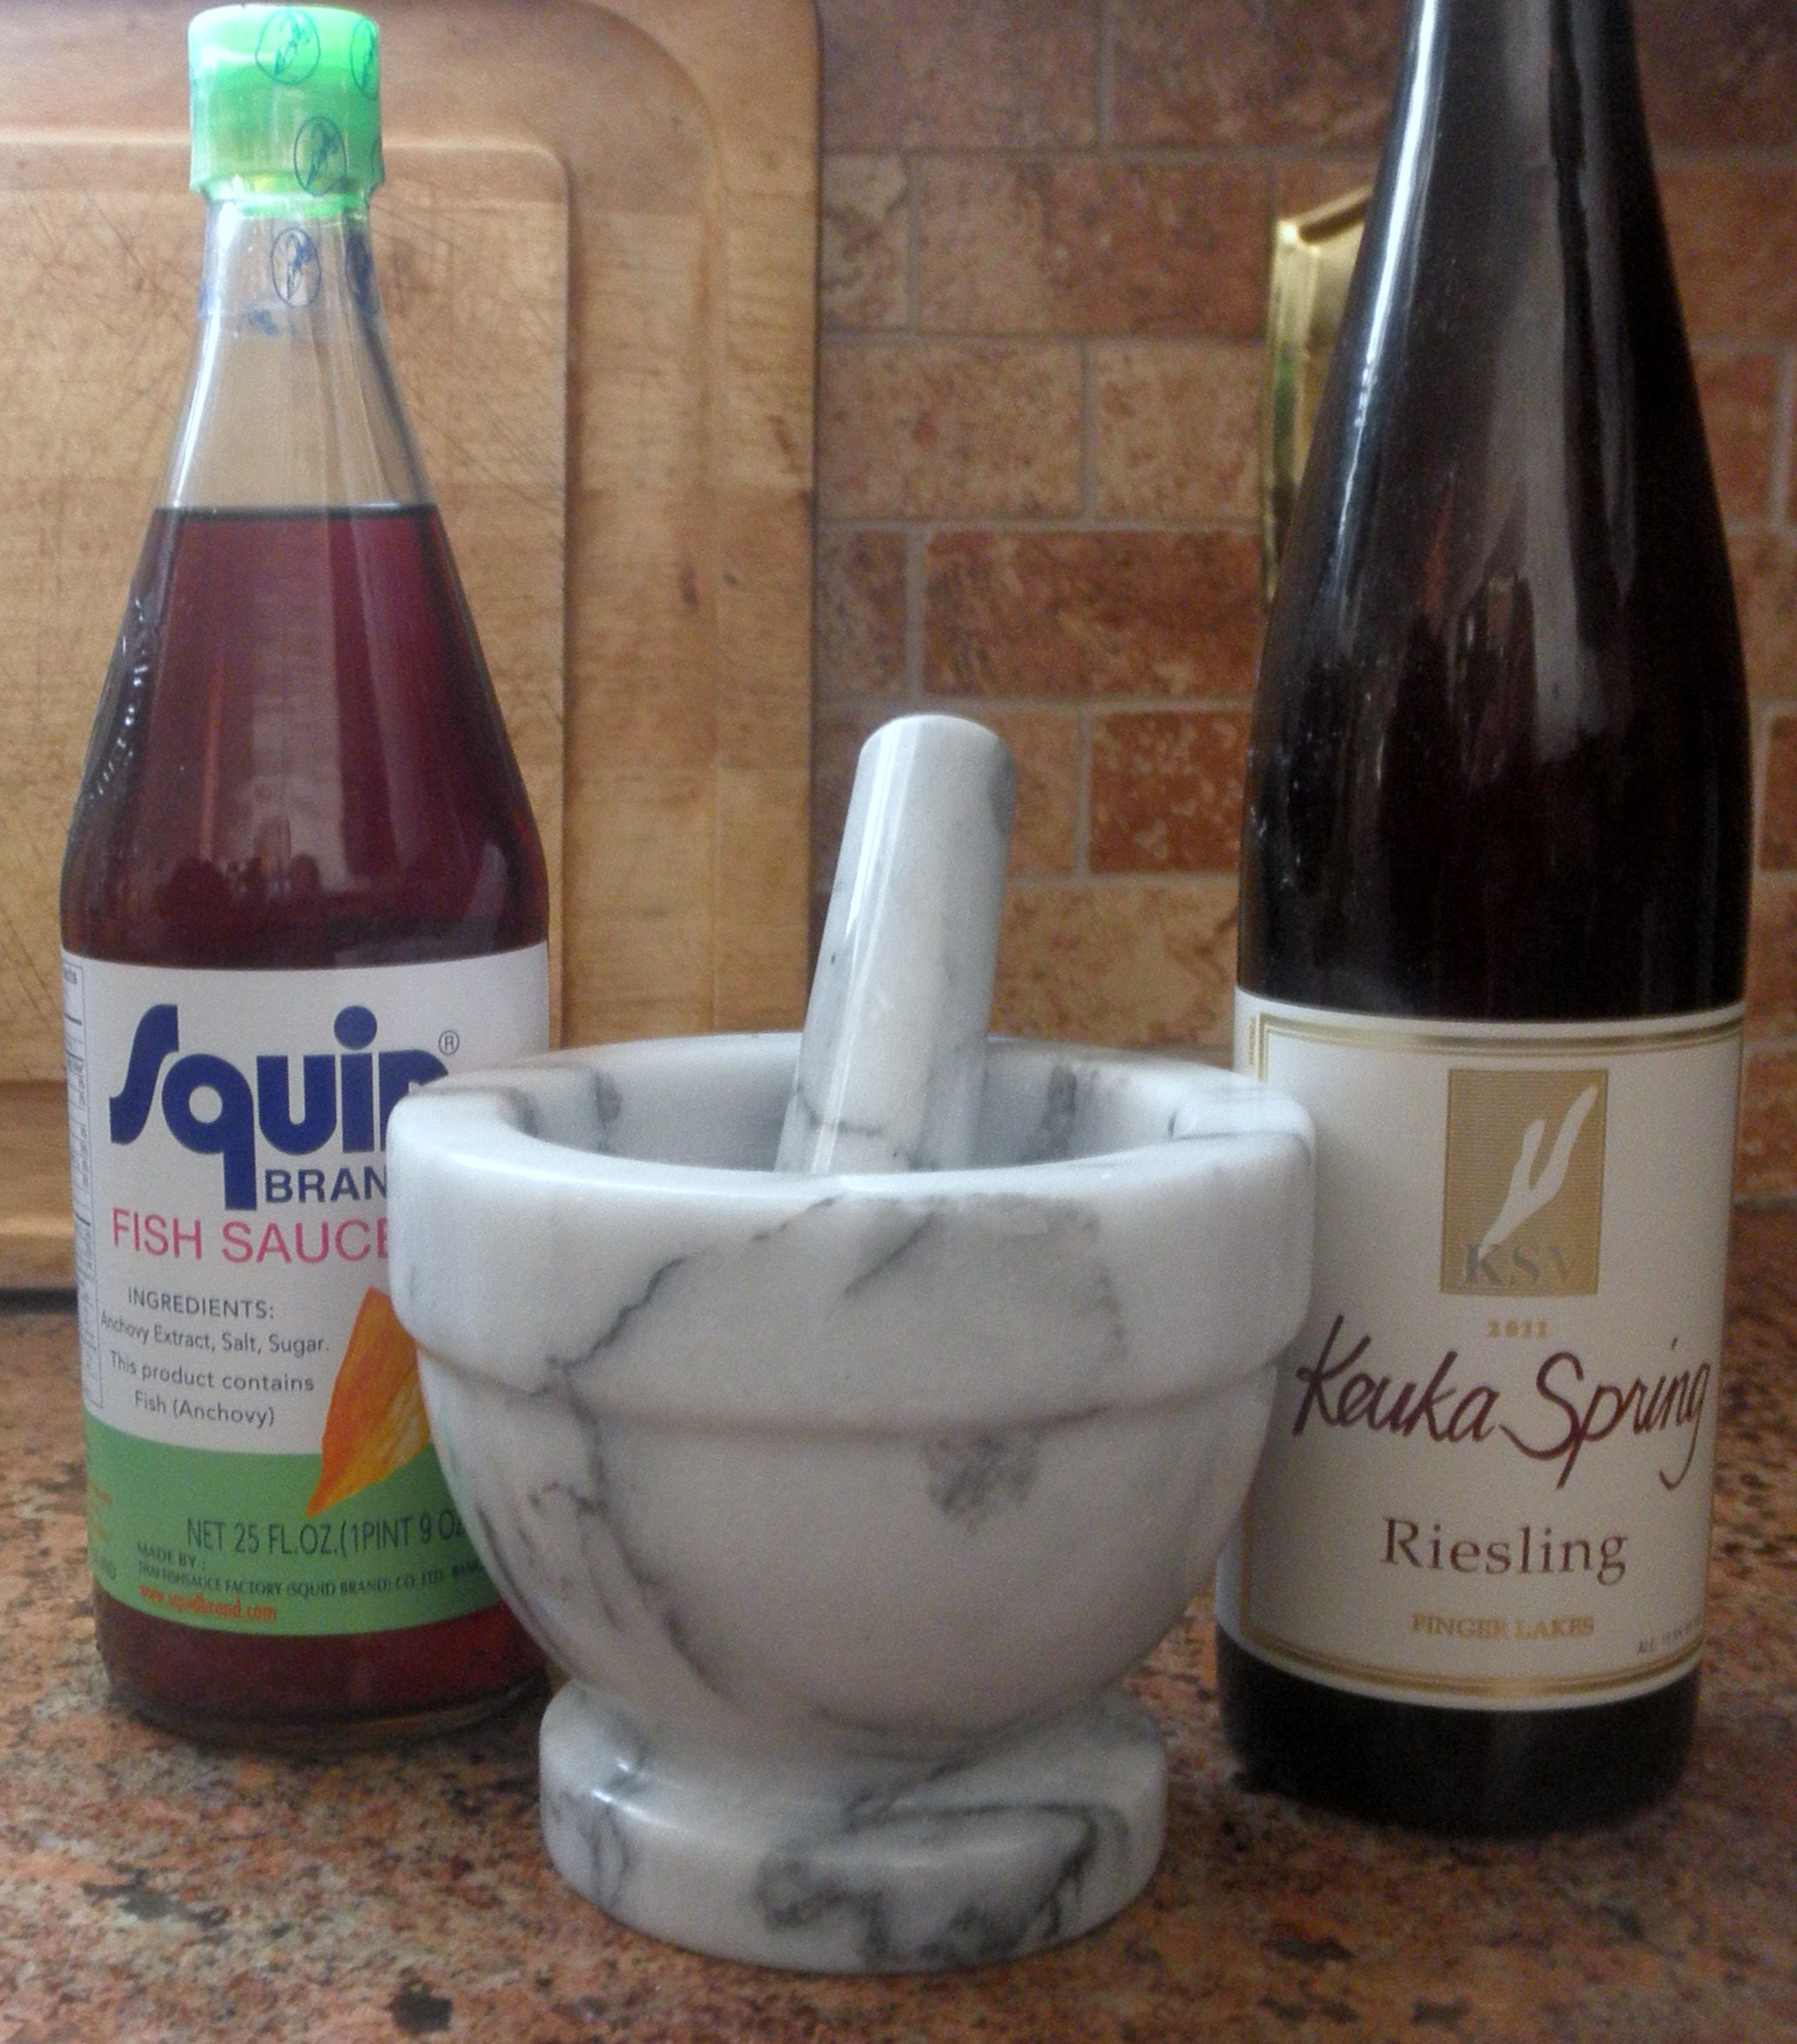 My big fat fish sauce wine pairing wineonmymind for What wine goes with fish